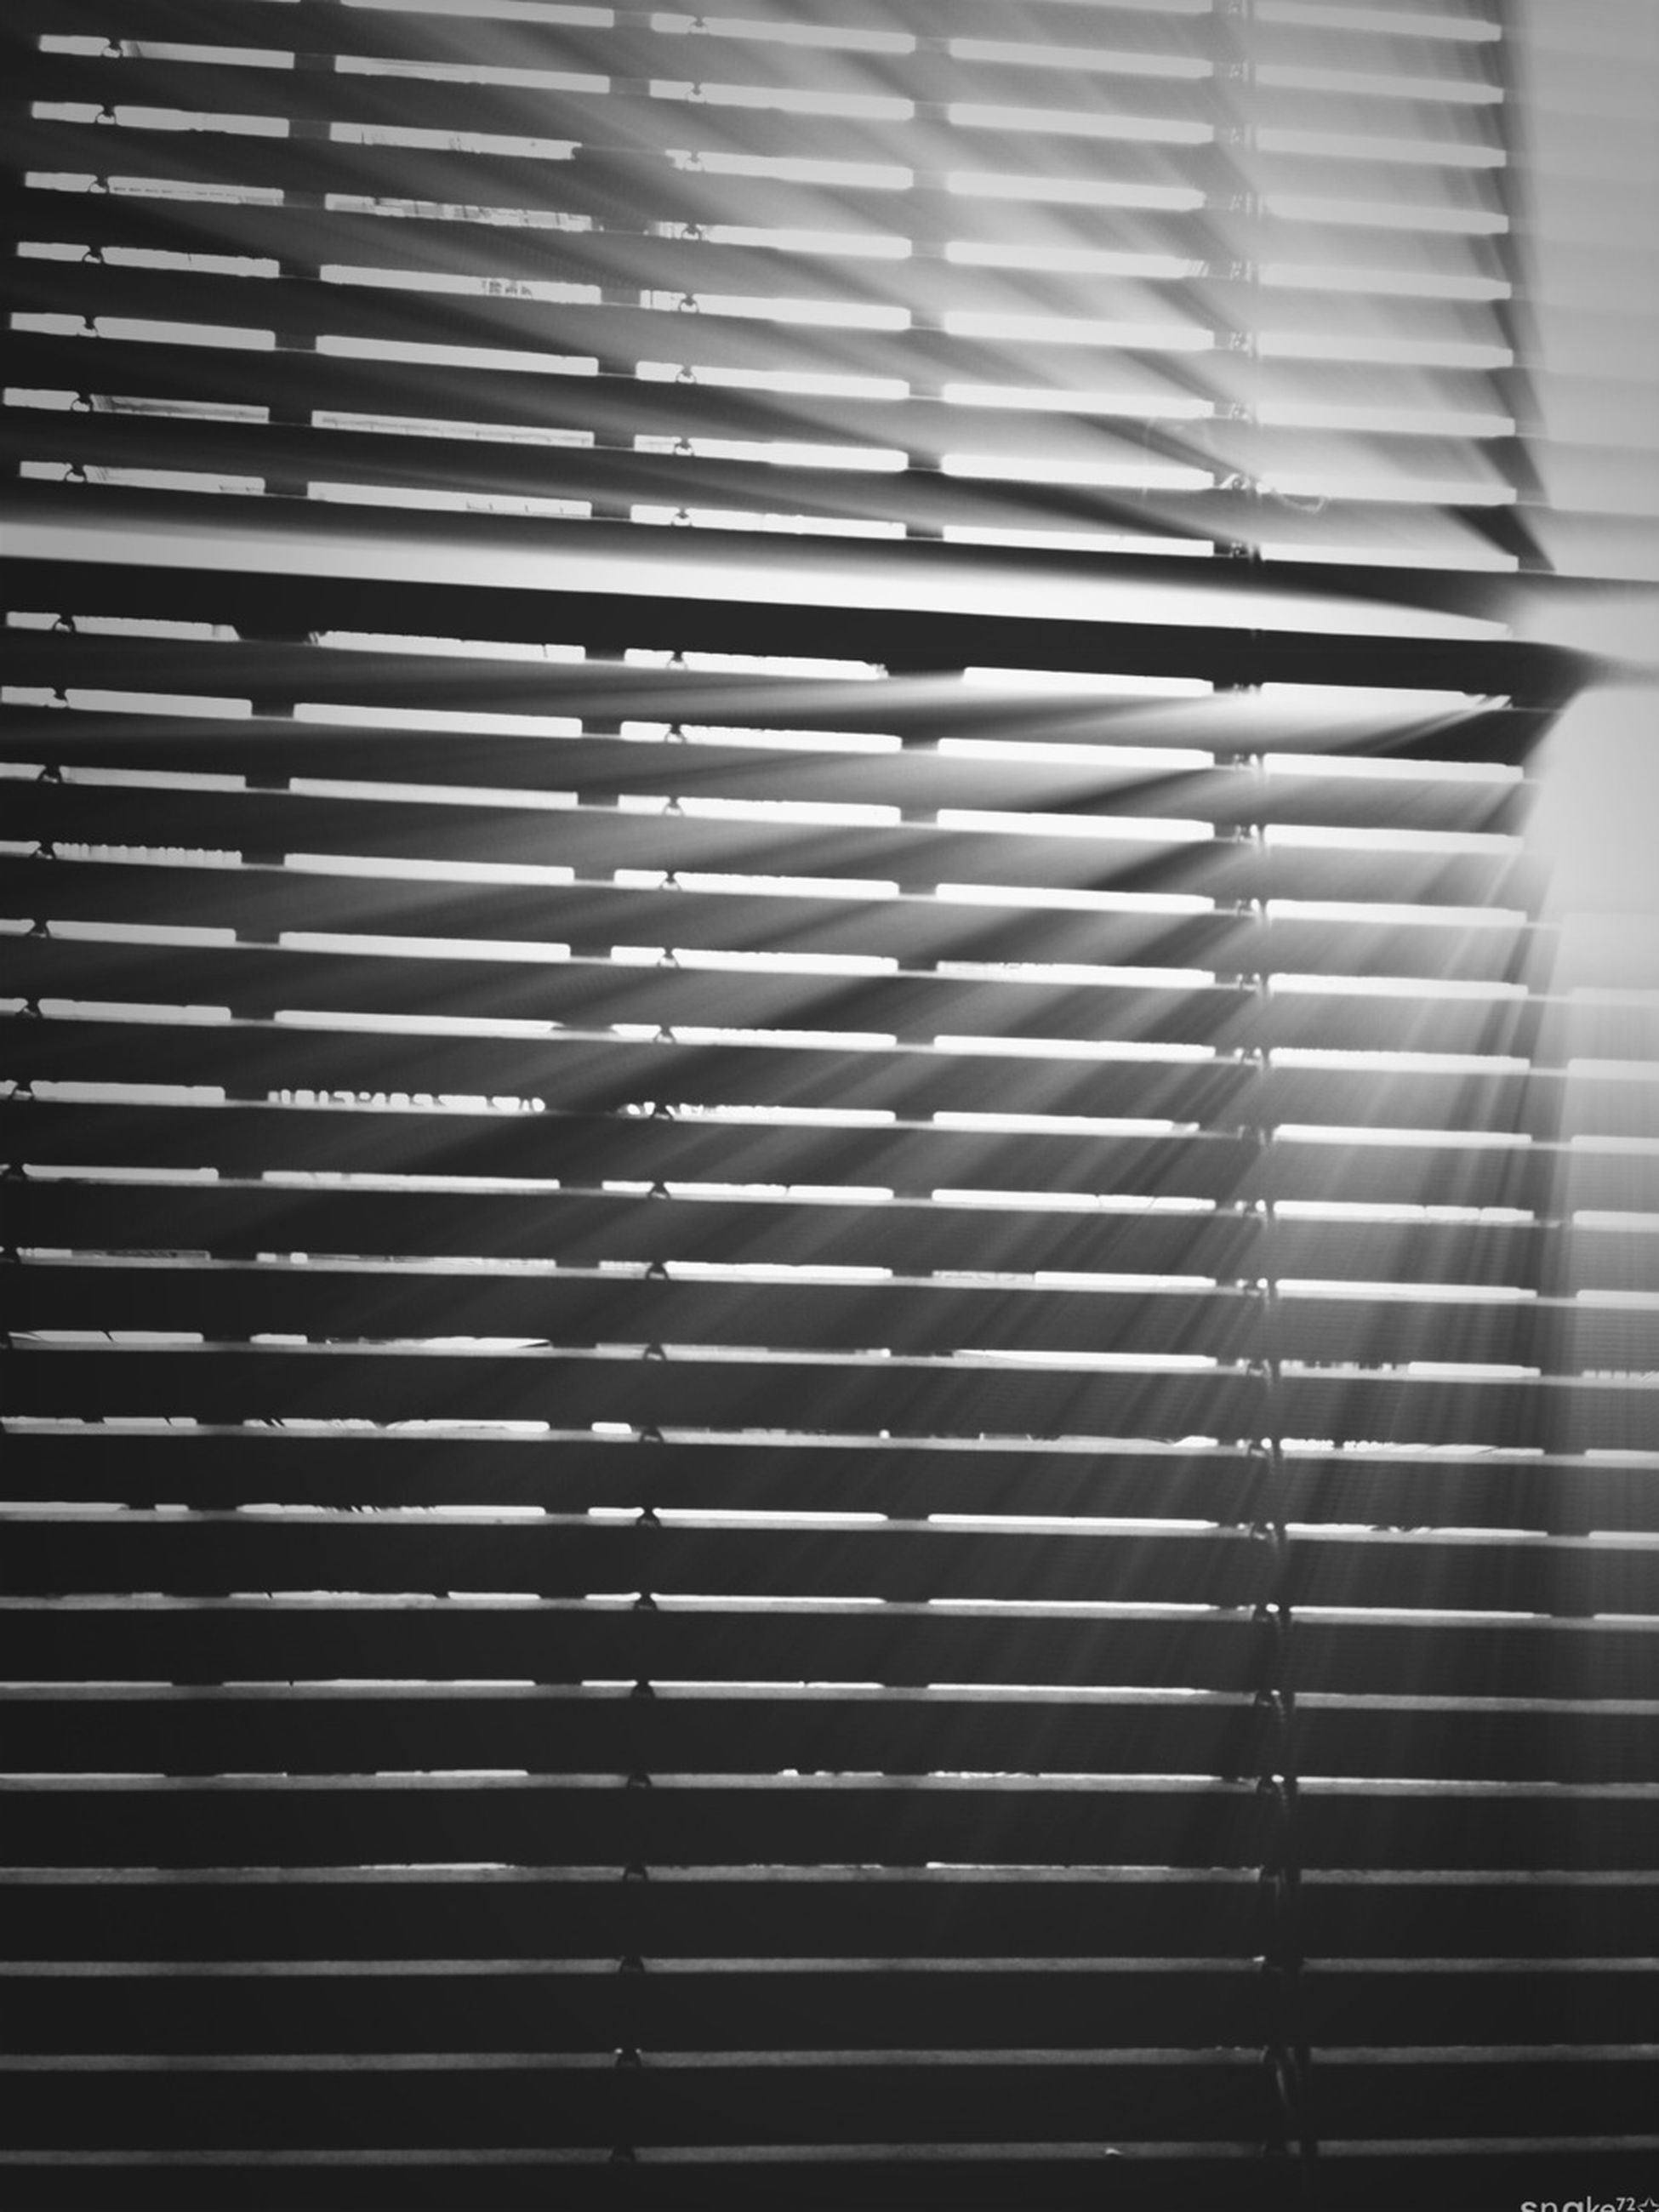 indoors, blinds, pattern, window, full frame, repetition, backgrounds, home interior, built structure, curtain, architecture, wall - building feature, no people, close-up, in a row, sunlight, closed, wall, house, day